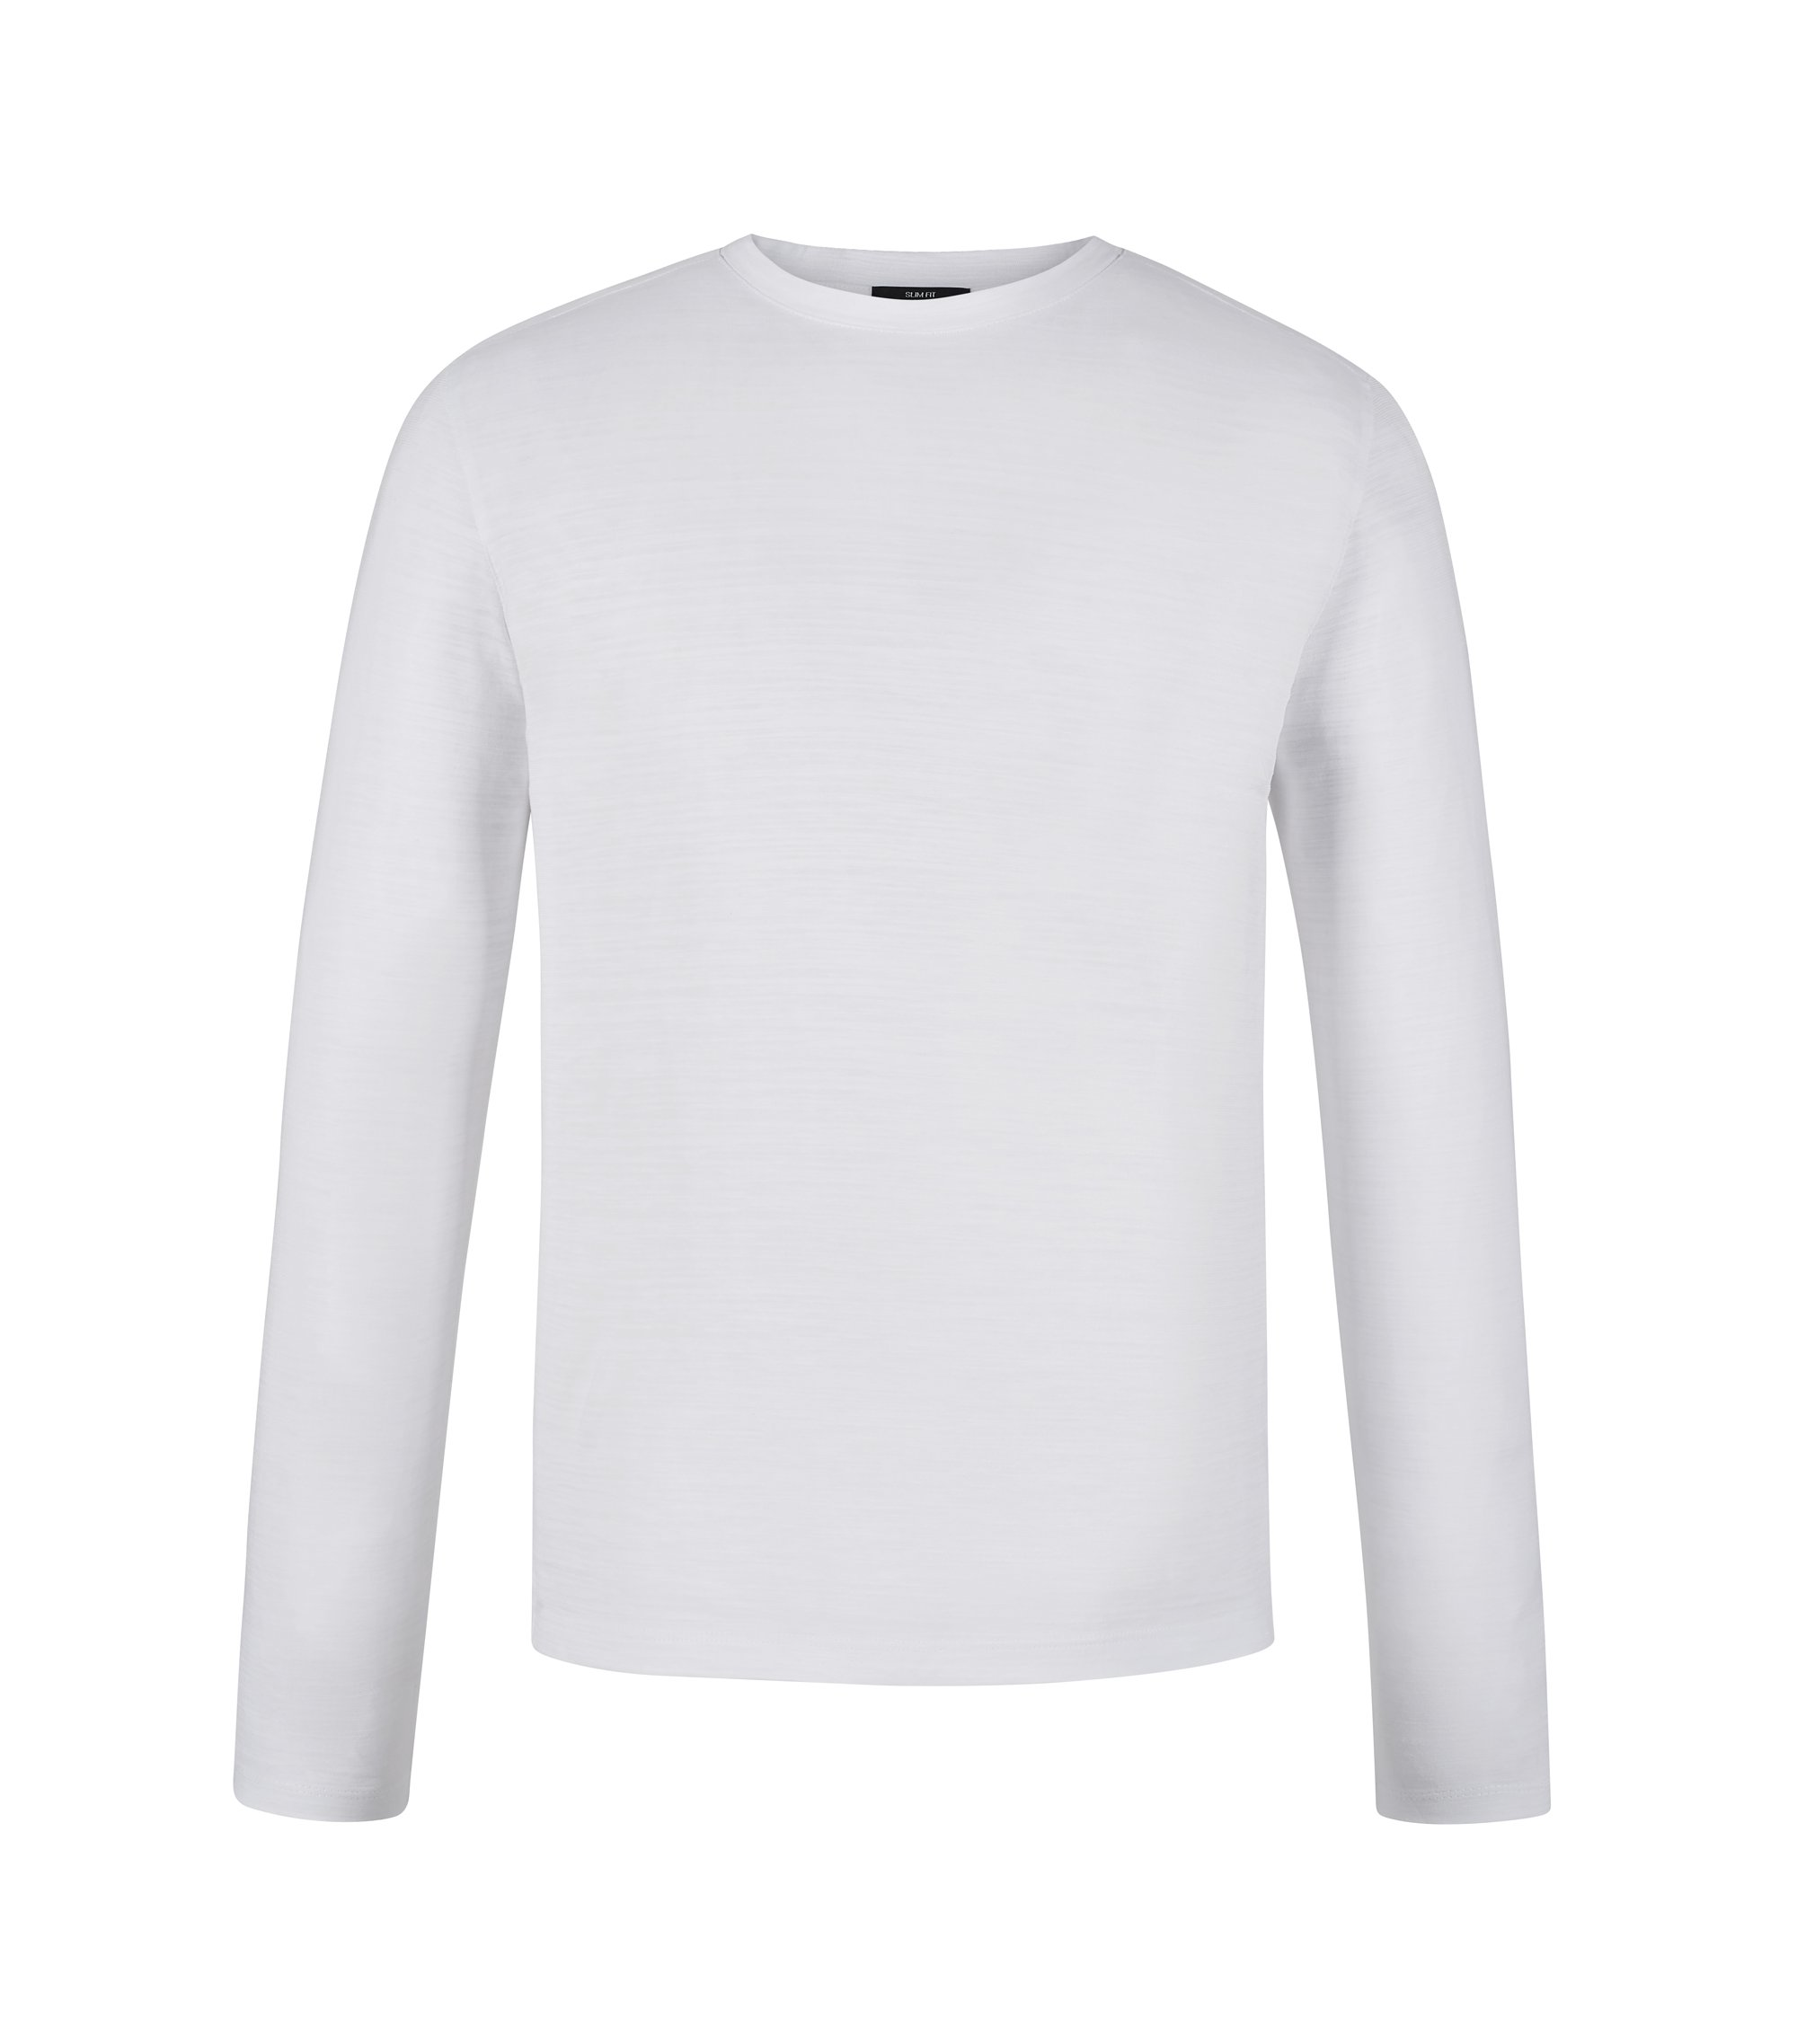 Cotton T-Shirt | Tenison, White